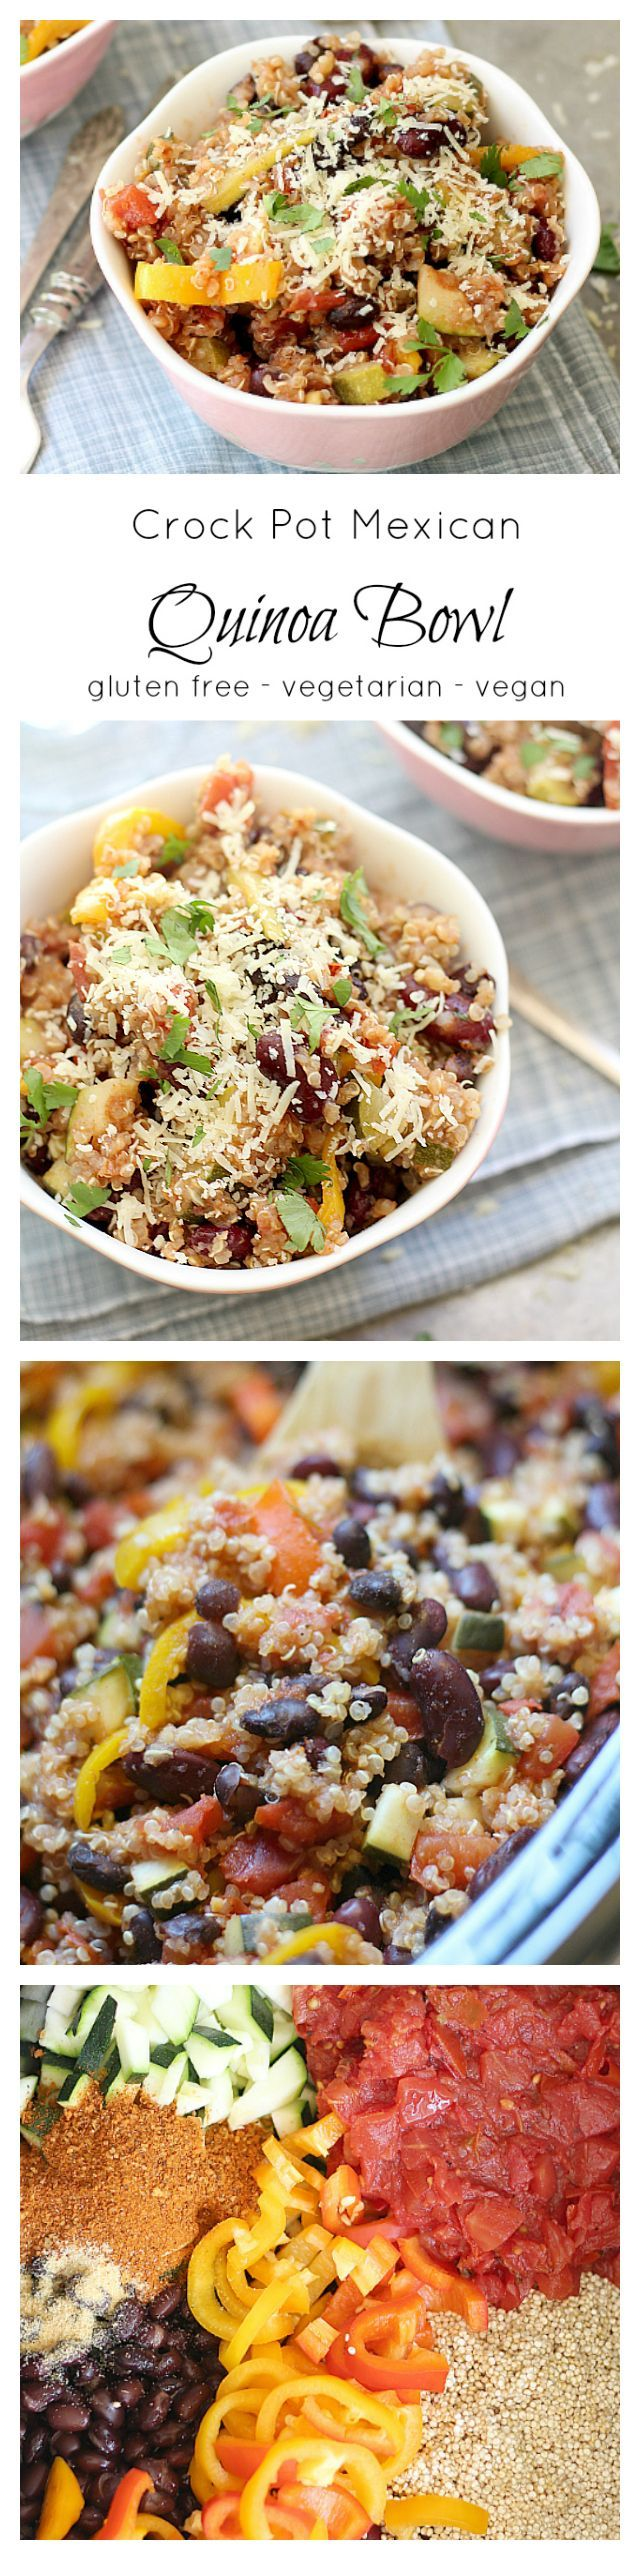 Easy Slow Cooker Quinoa Bowl Made In The Crock Pot Mexican Quinoa Recipe  That Is